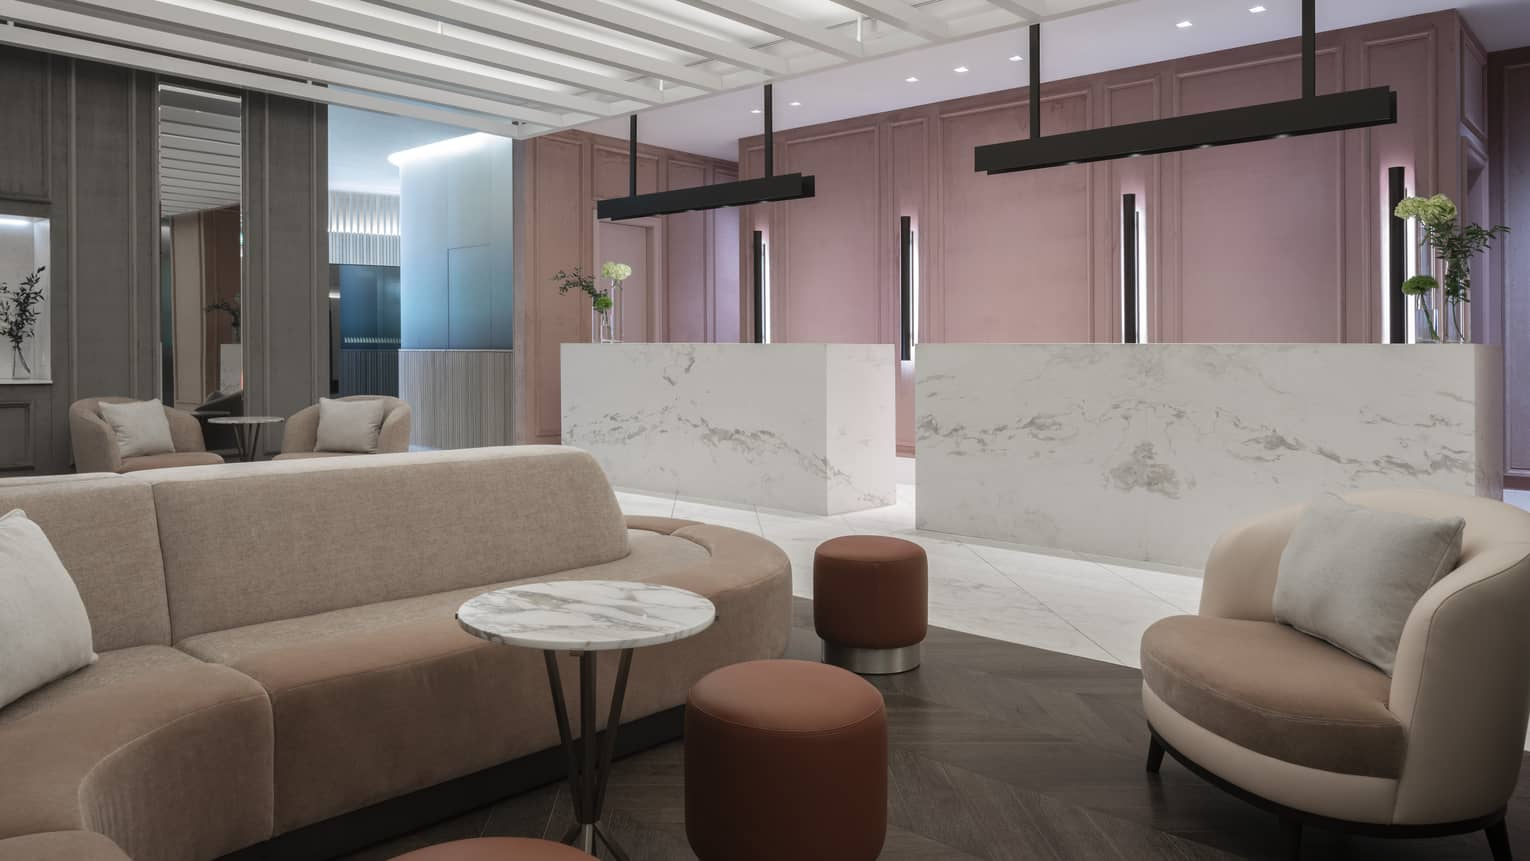 Social area in lobby with marbled desks, modular sofa, chairs, marble table, ottomans